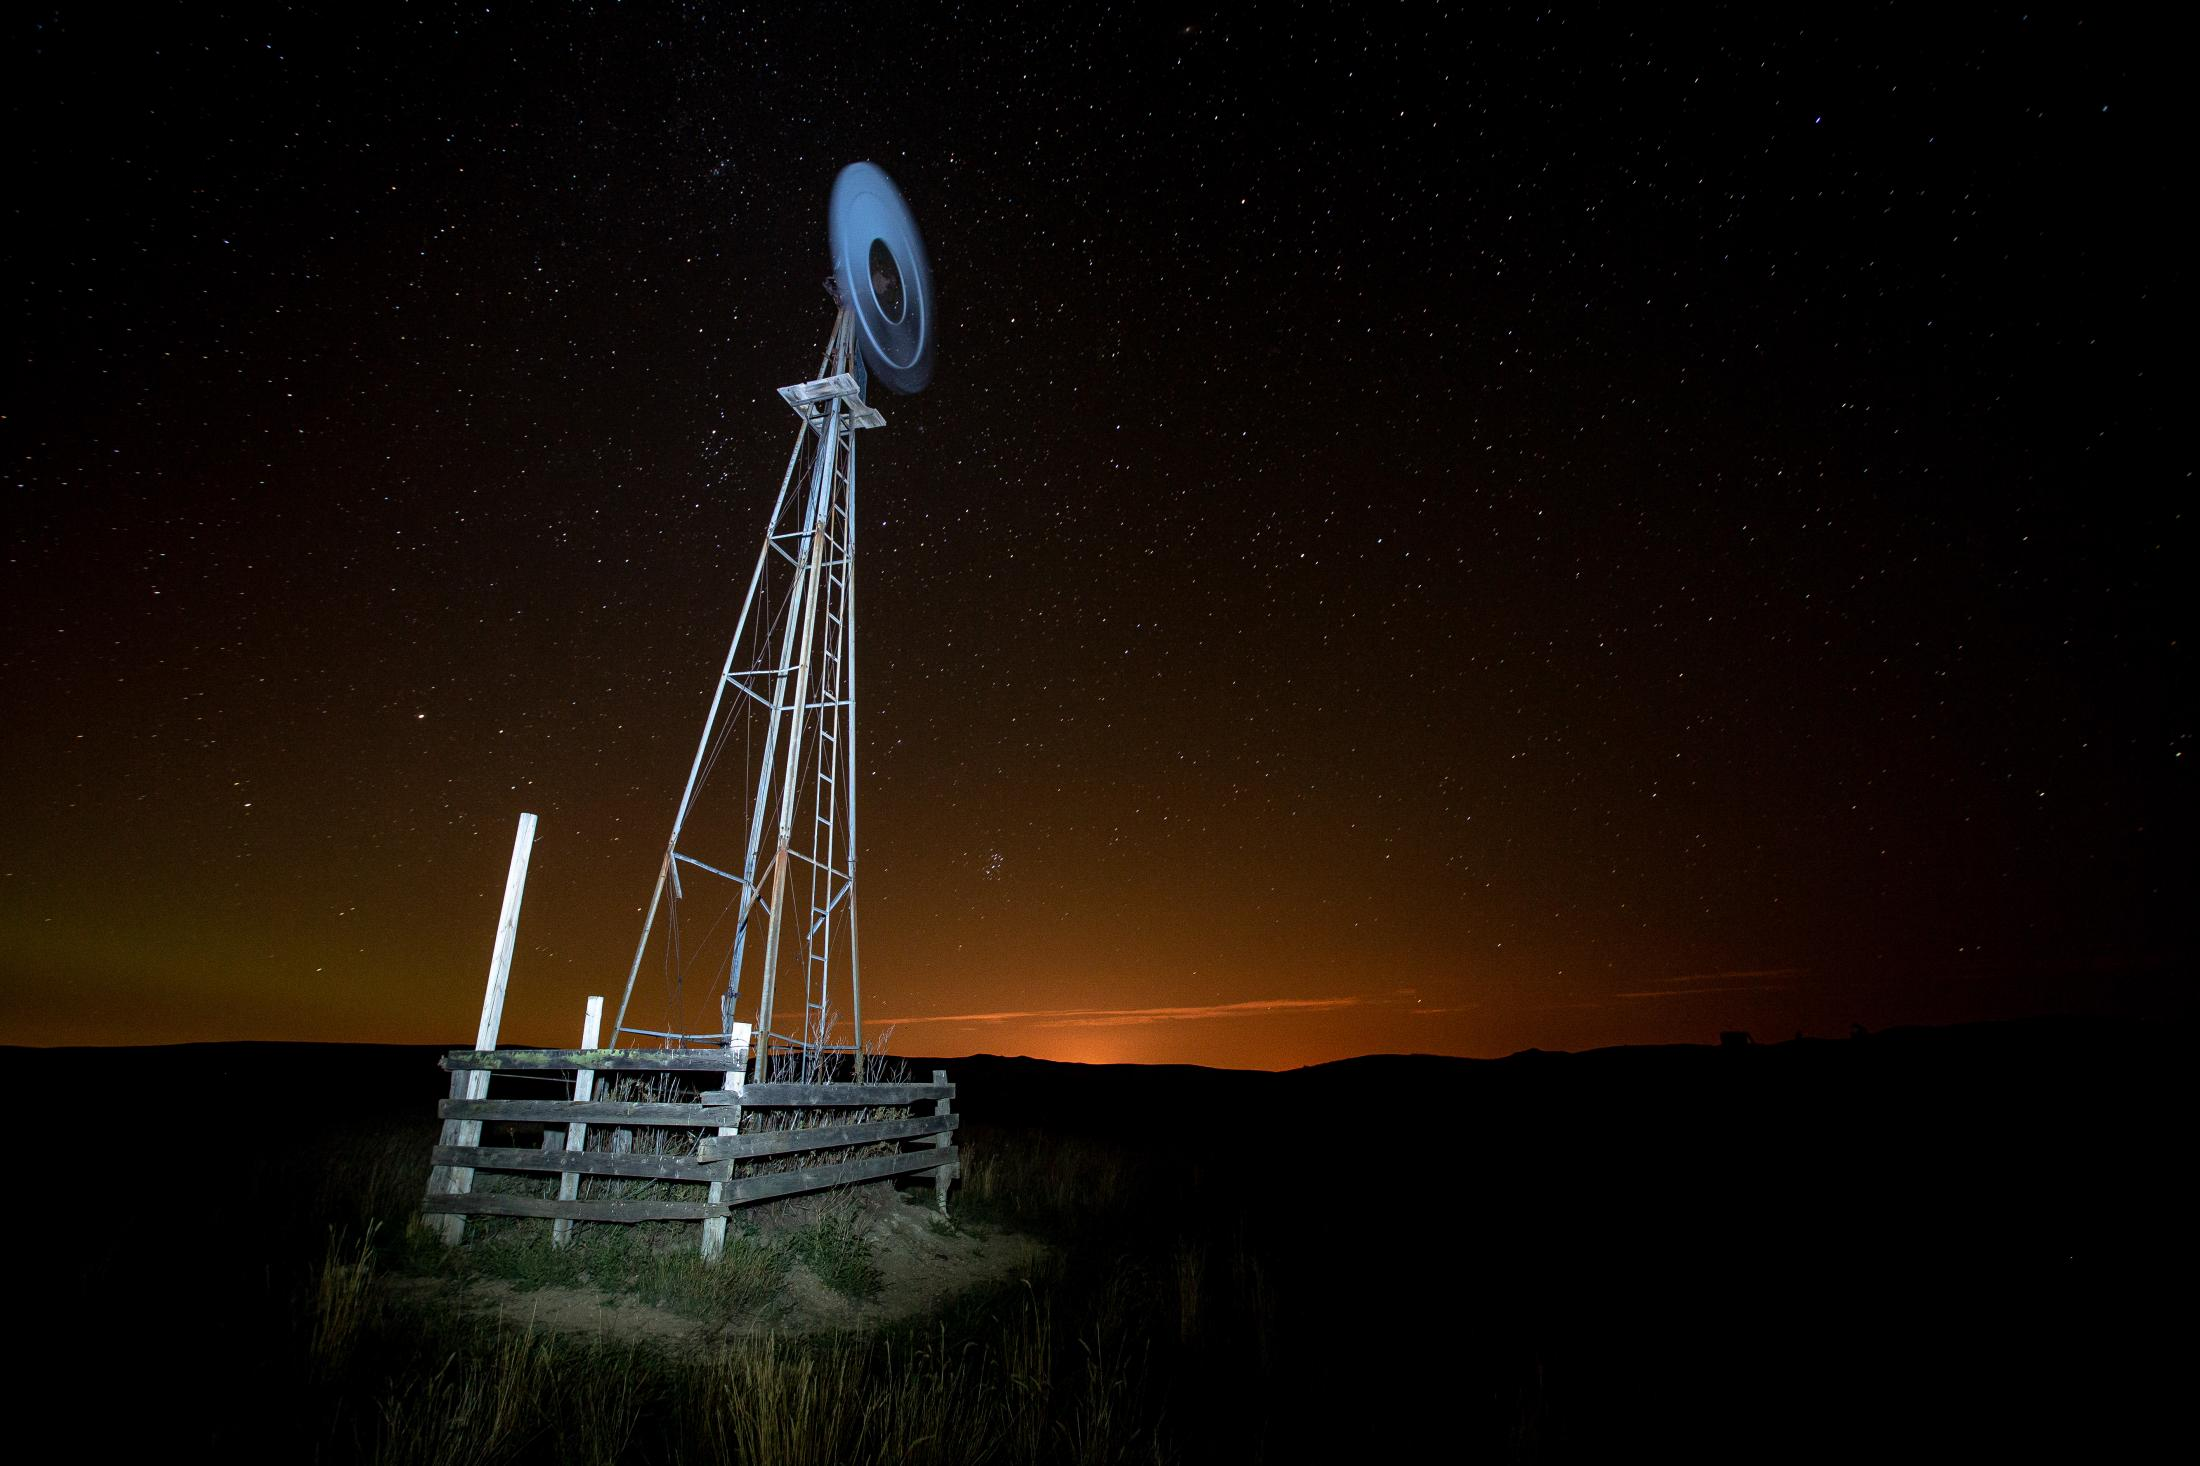 9/23/14- North Dakota - Orange lights aluminate the night sky. The source from this light is thousands of natural gas flames. These flames are located on well sites producing oil and burn the gas instead of collecting it.